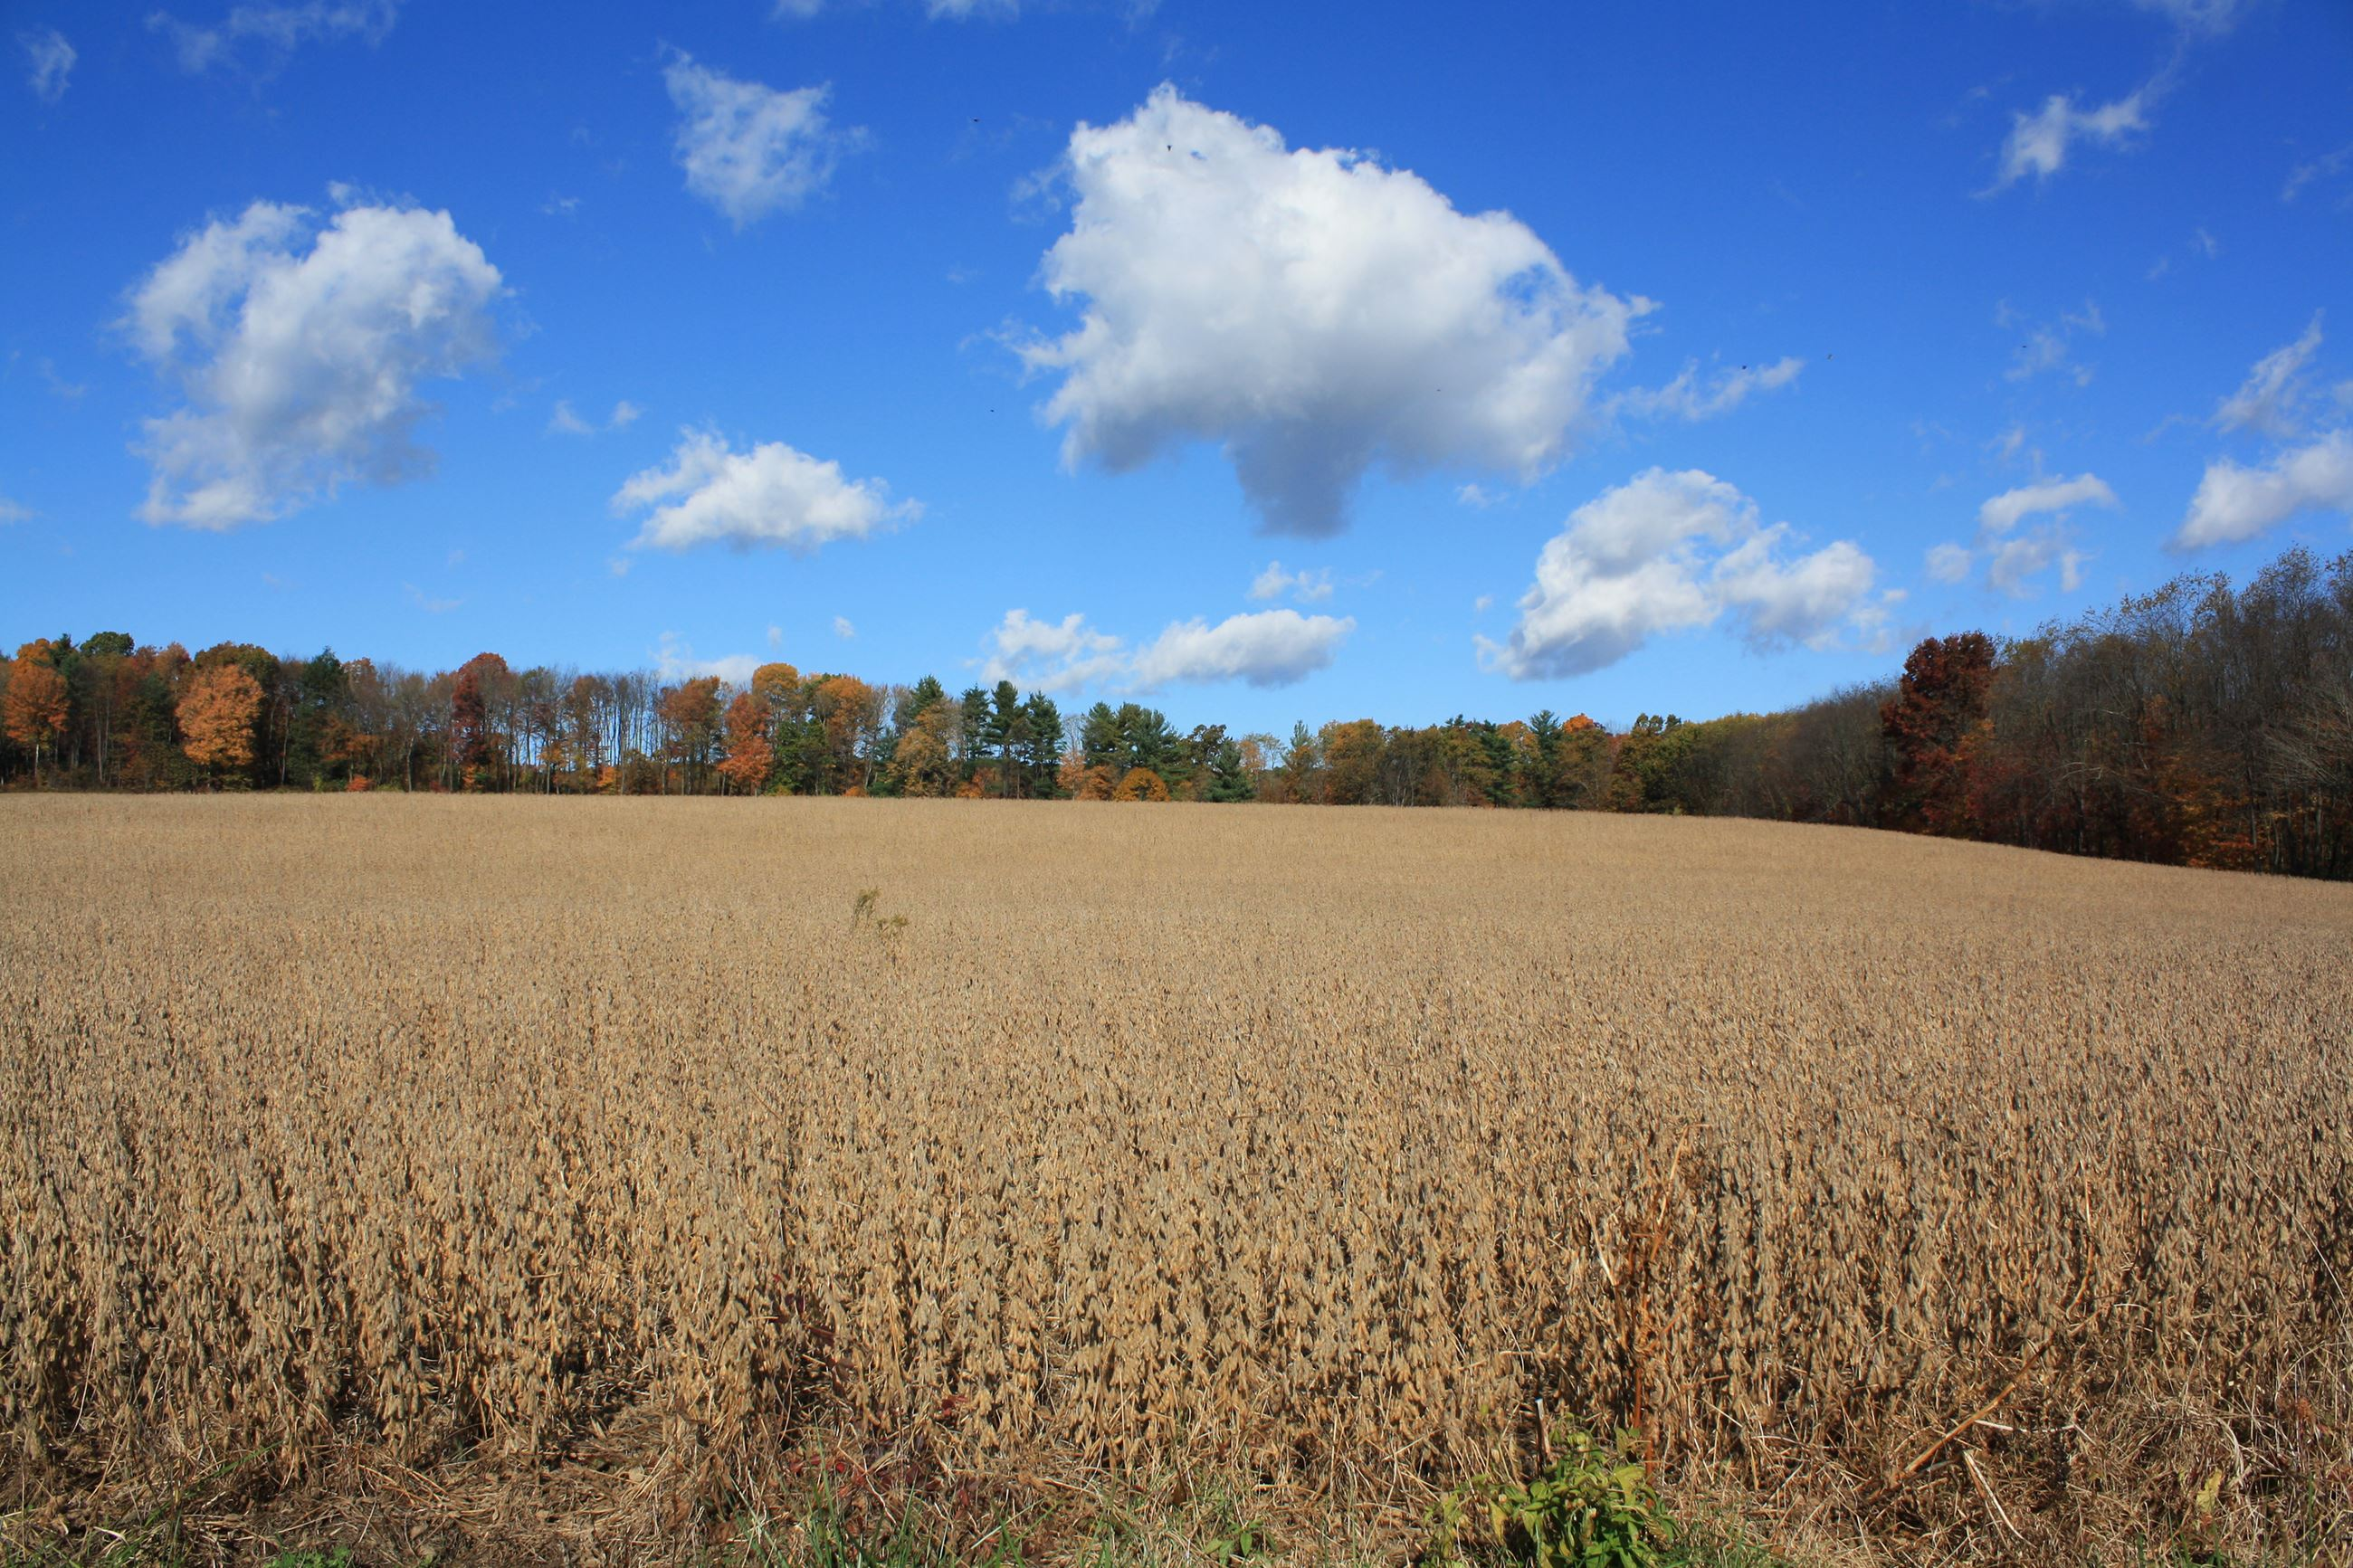 Crop field, blue sky, white clouds